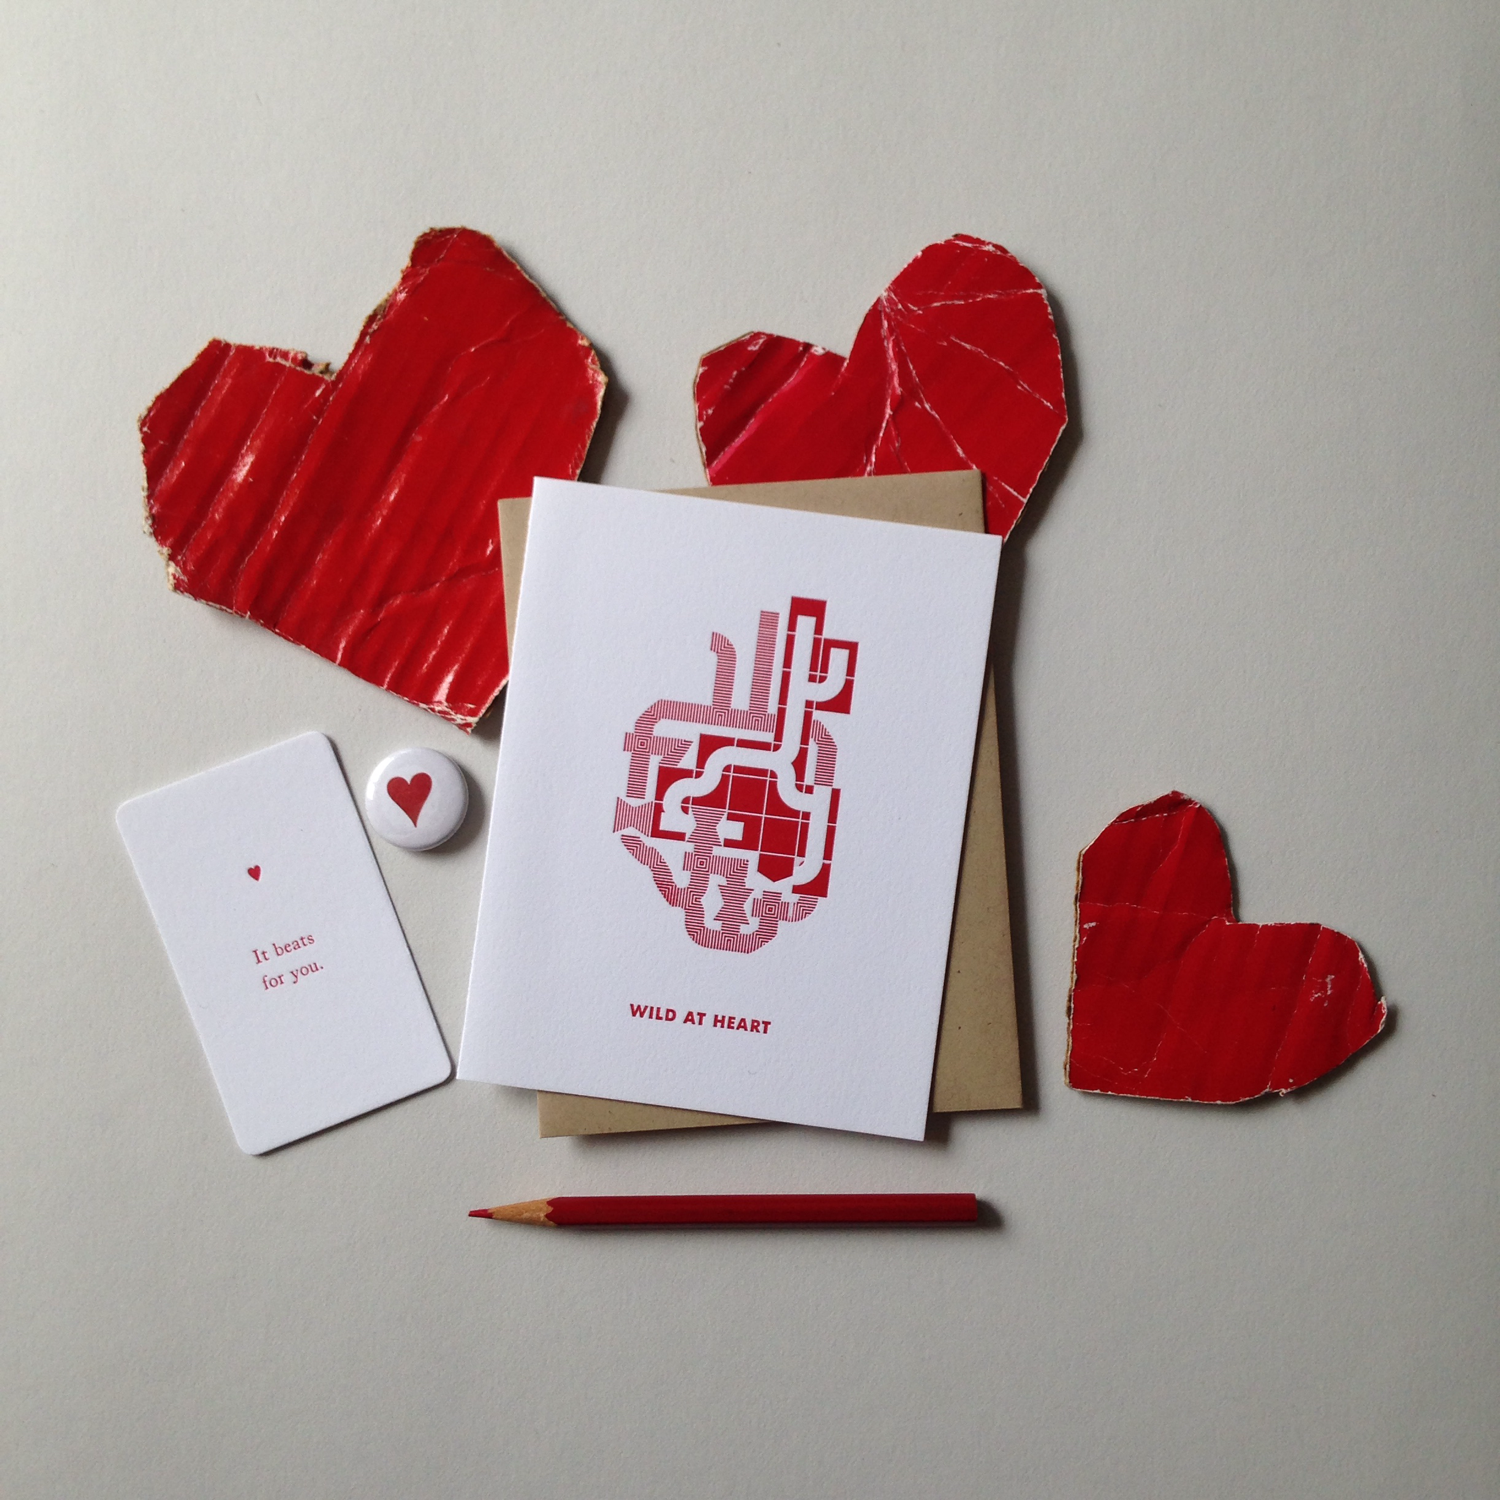 alphablox-heart-wild-at-heart-greeting-card-bremelo-press-made-in-seattke